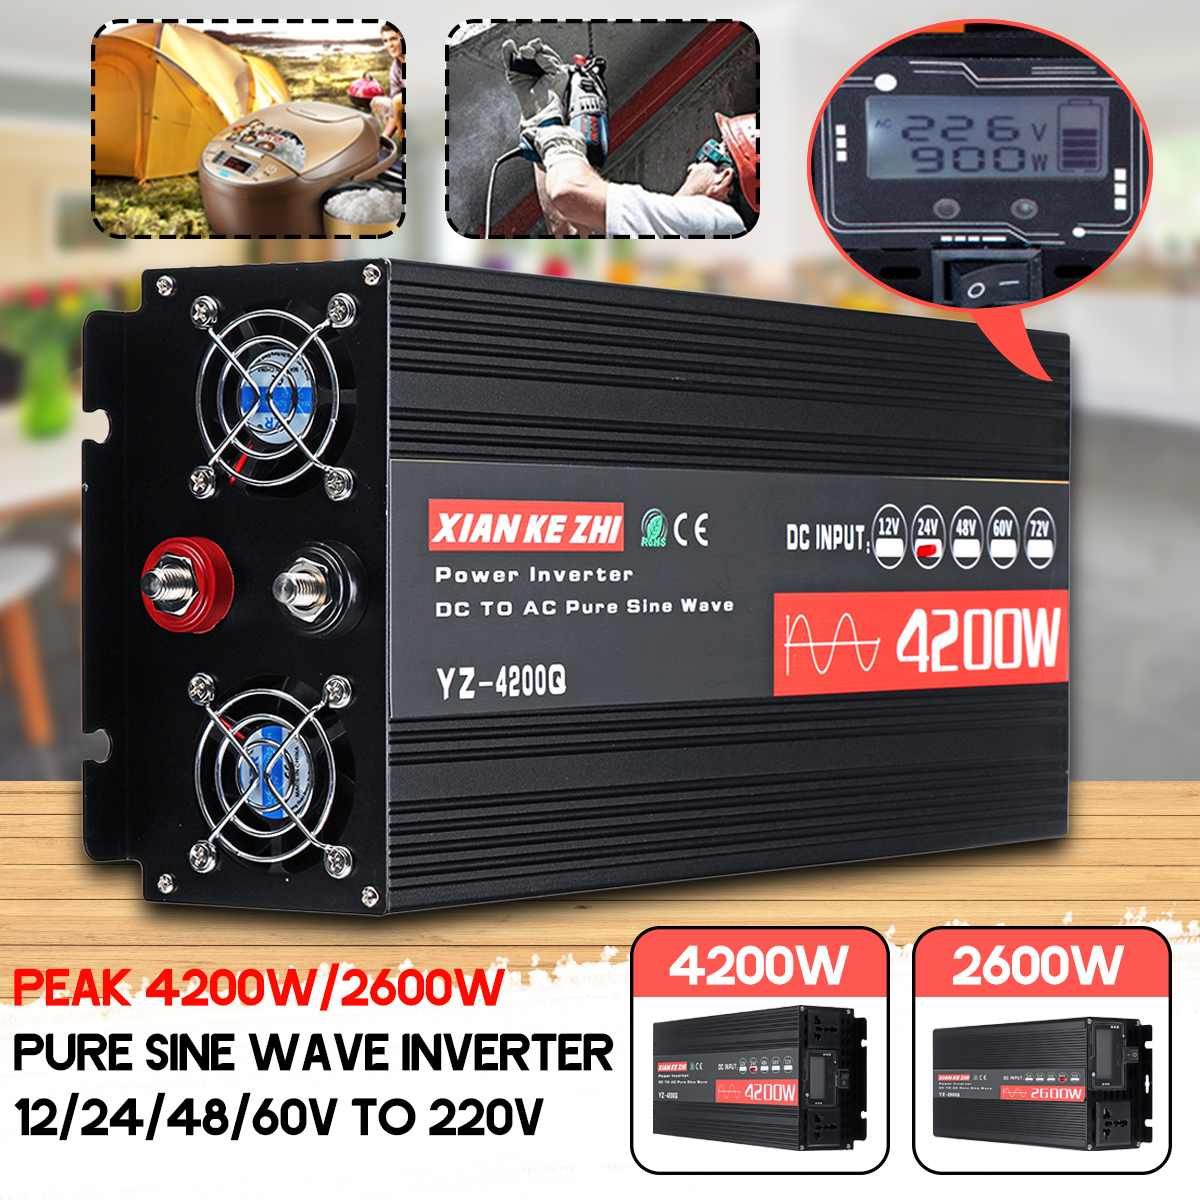 Inverter 12 V/24 V/48/60 V 220V 2600/4200W Spannung transformator Reine sinus Welle Power Inverter DC12V zu AC 220V Konverter + Led-anzeige